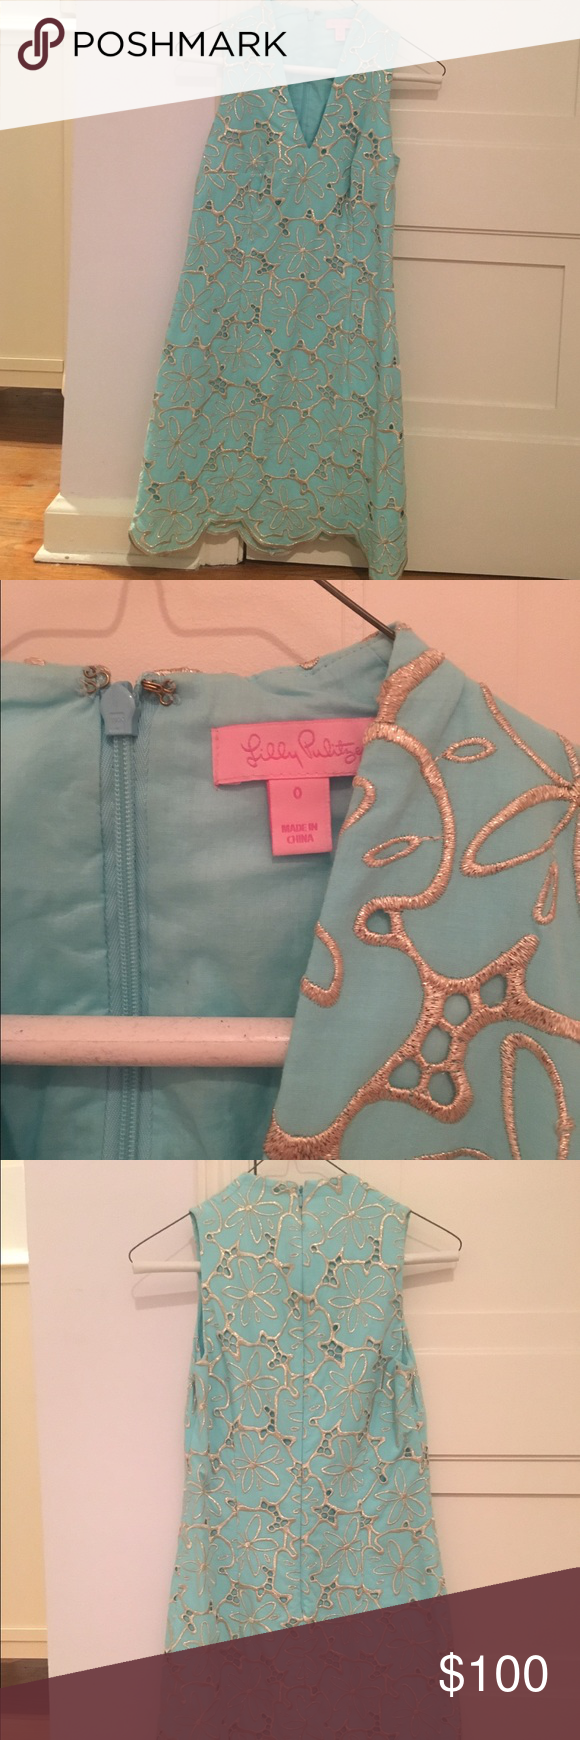 Lily Pulitzer Shift Dress Light blue Lilly Pulitzer shift dress with gold piping. Worn only twice, in perfect condition. The bottom has scalloped detailing. Open to offers Lilly Pulitzer Dresses